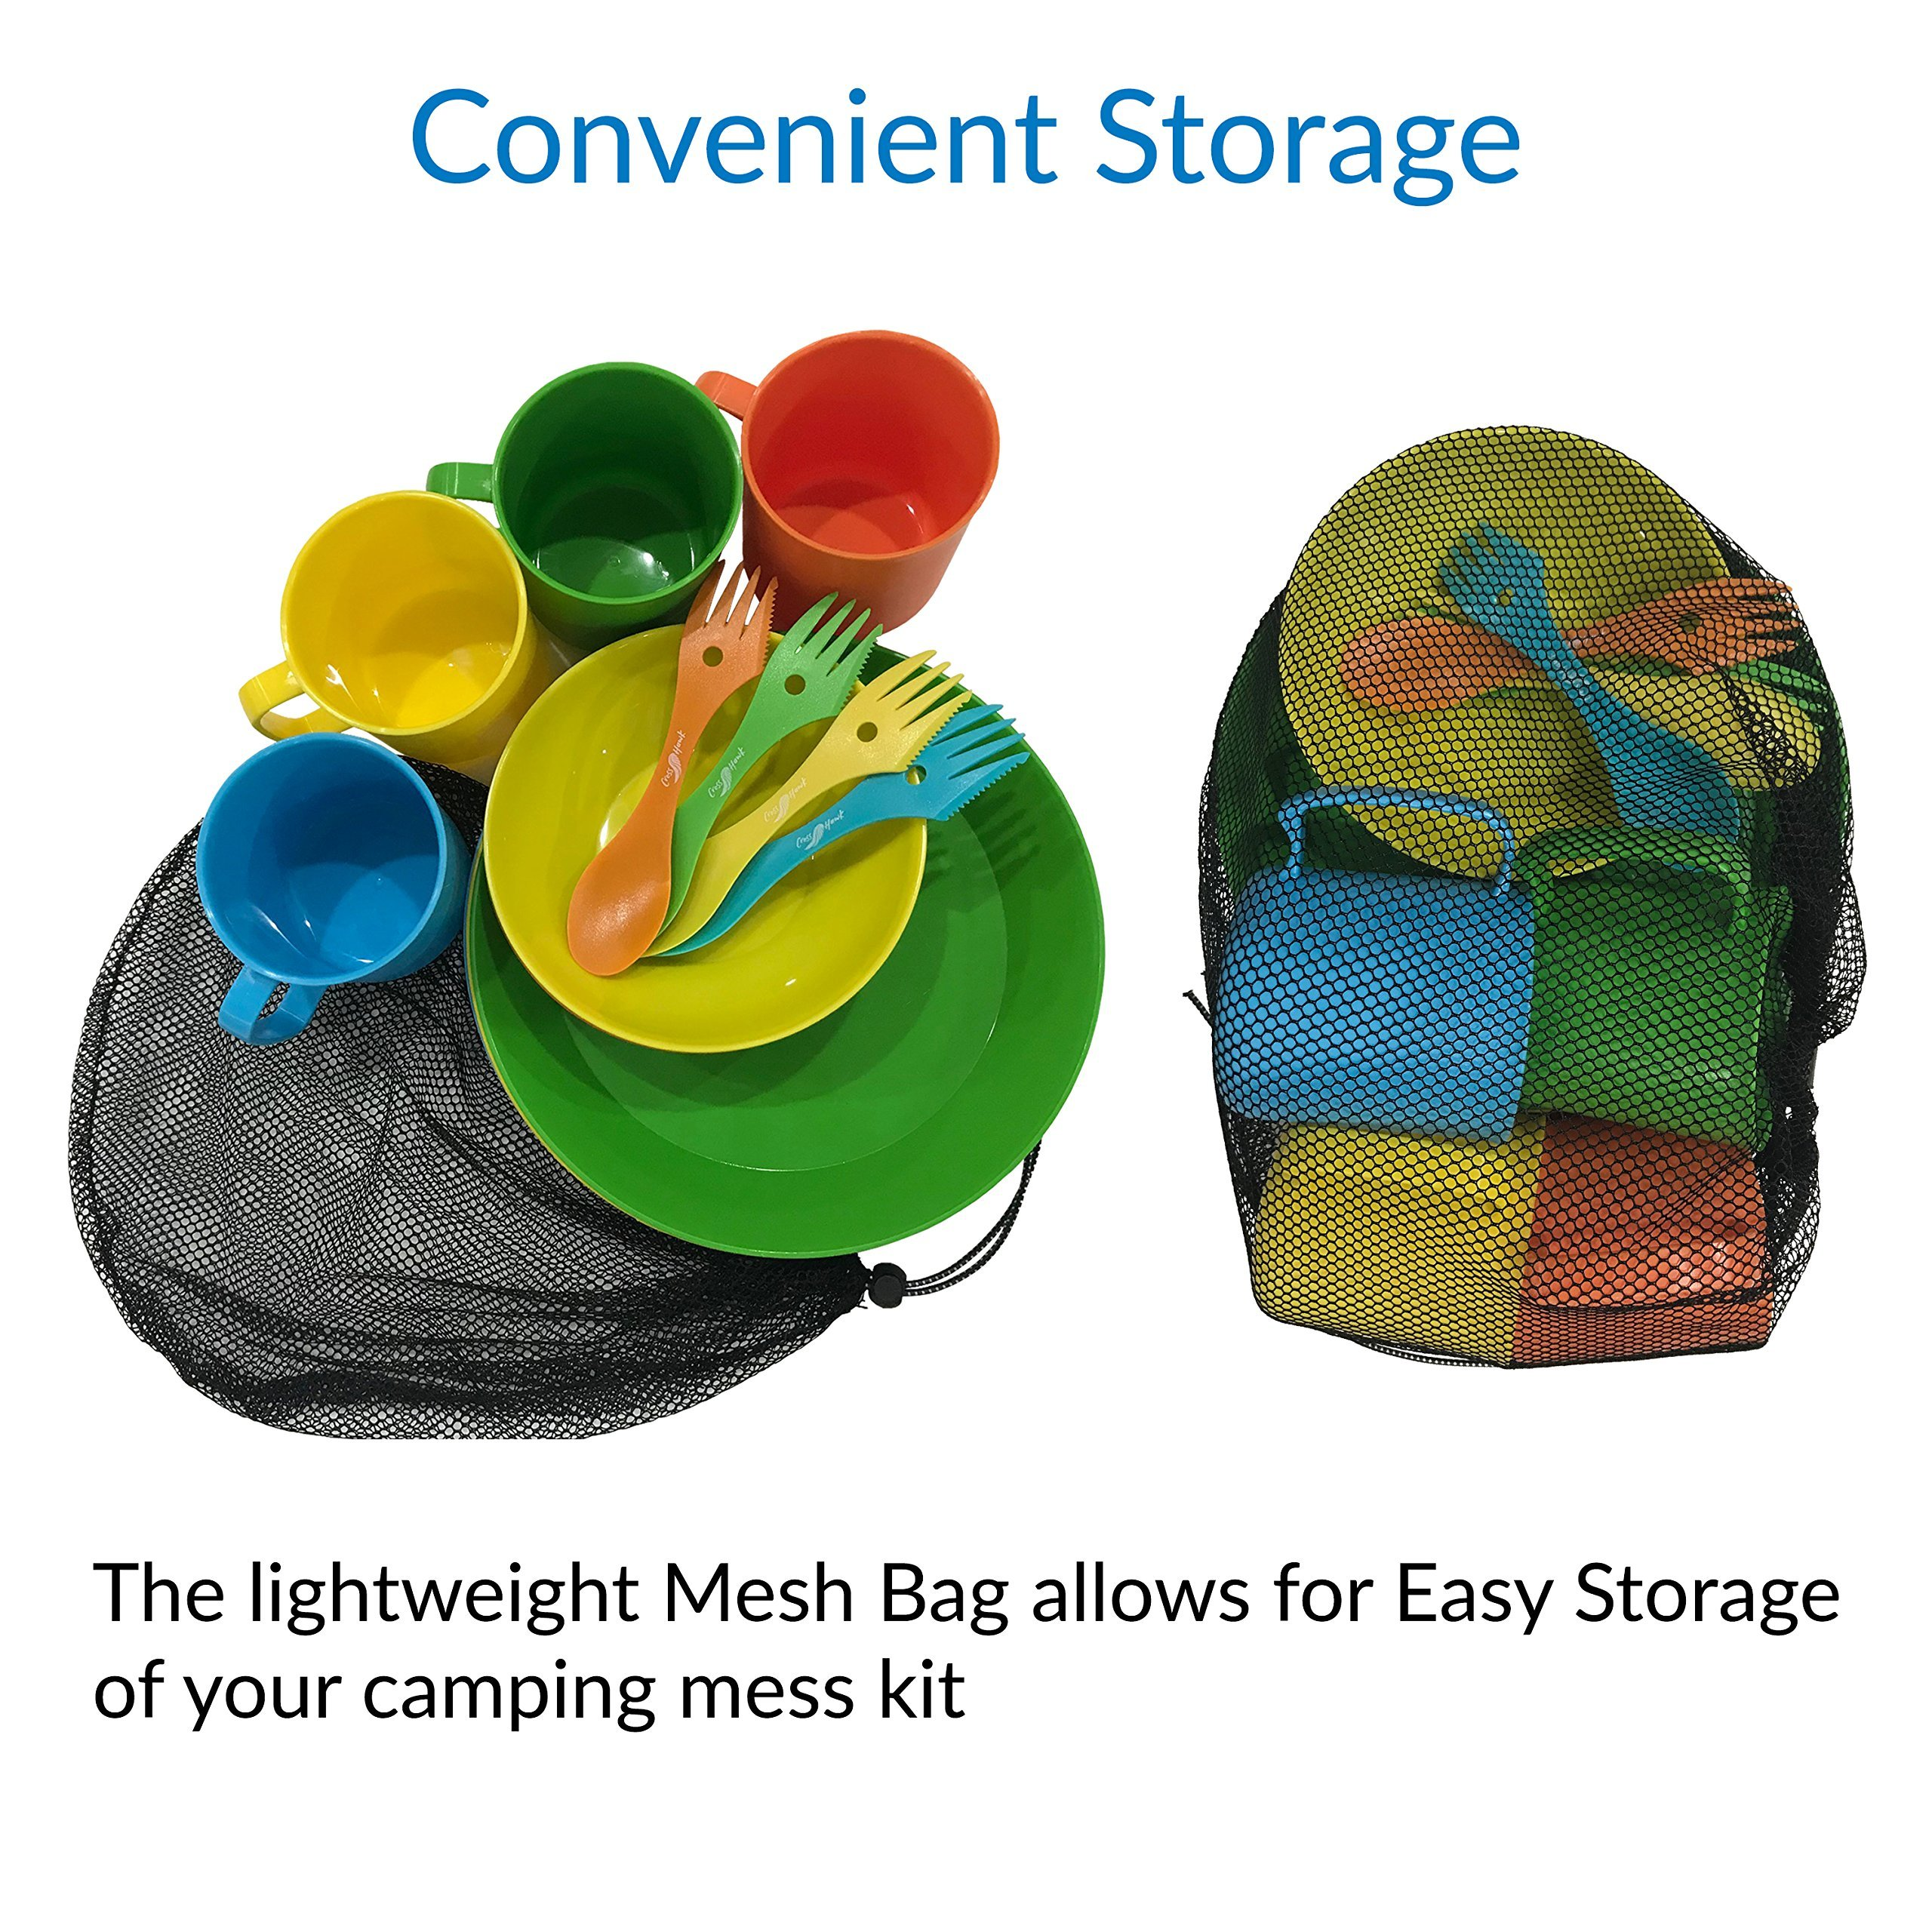 CrossHawk Camping Mess Kit | Premium Full Tableware Set With Mesh Bag For 4 People | Lightweight, Practical, Perfect For Hiking & Backpacking, School Camps, Family Vacations by CrossHawk